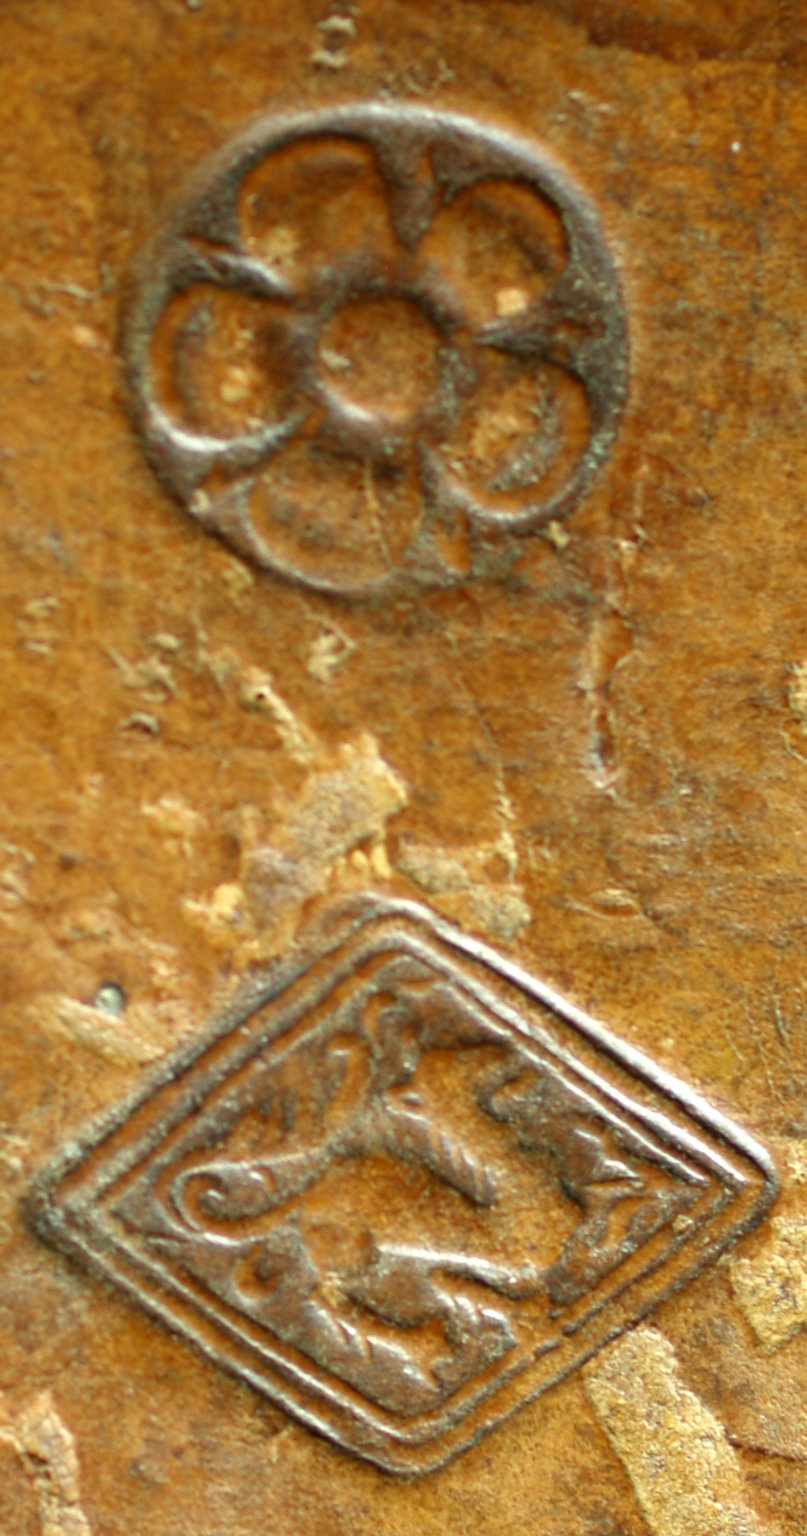 Small rombus stamp and small rosette (detail), INC J467.